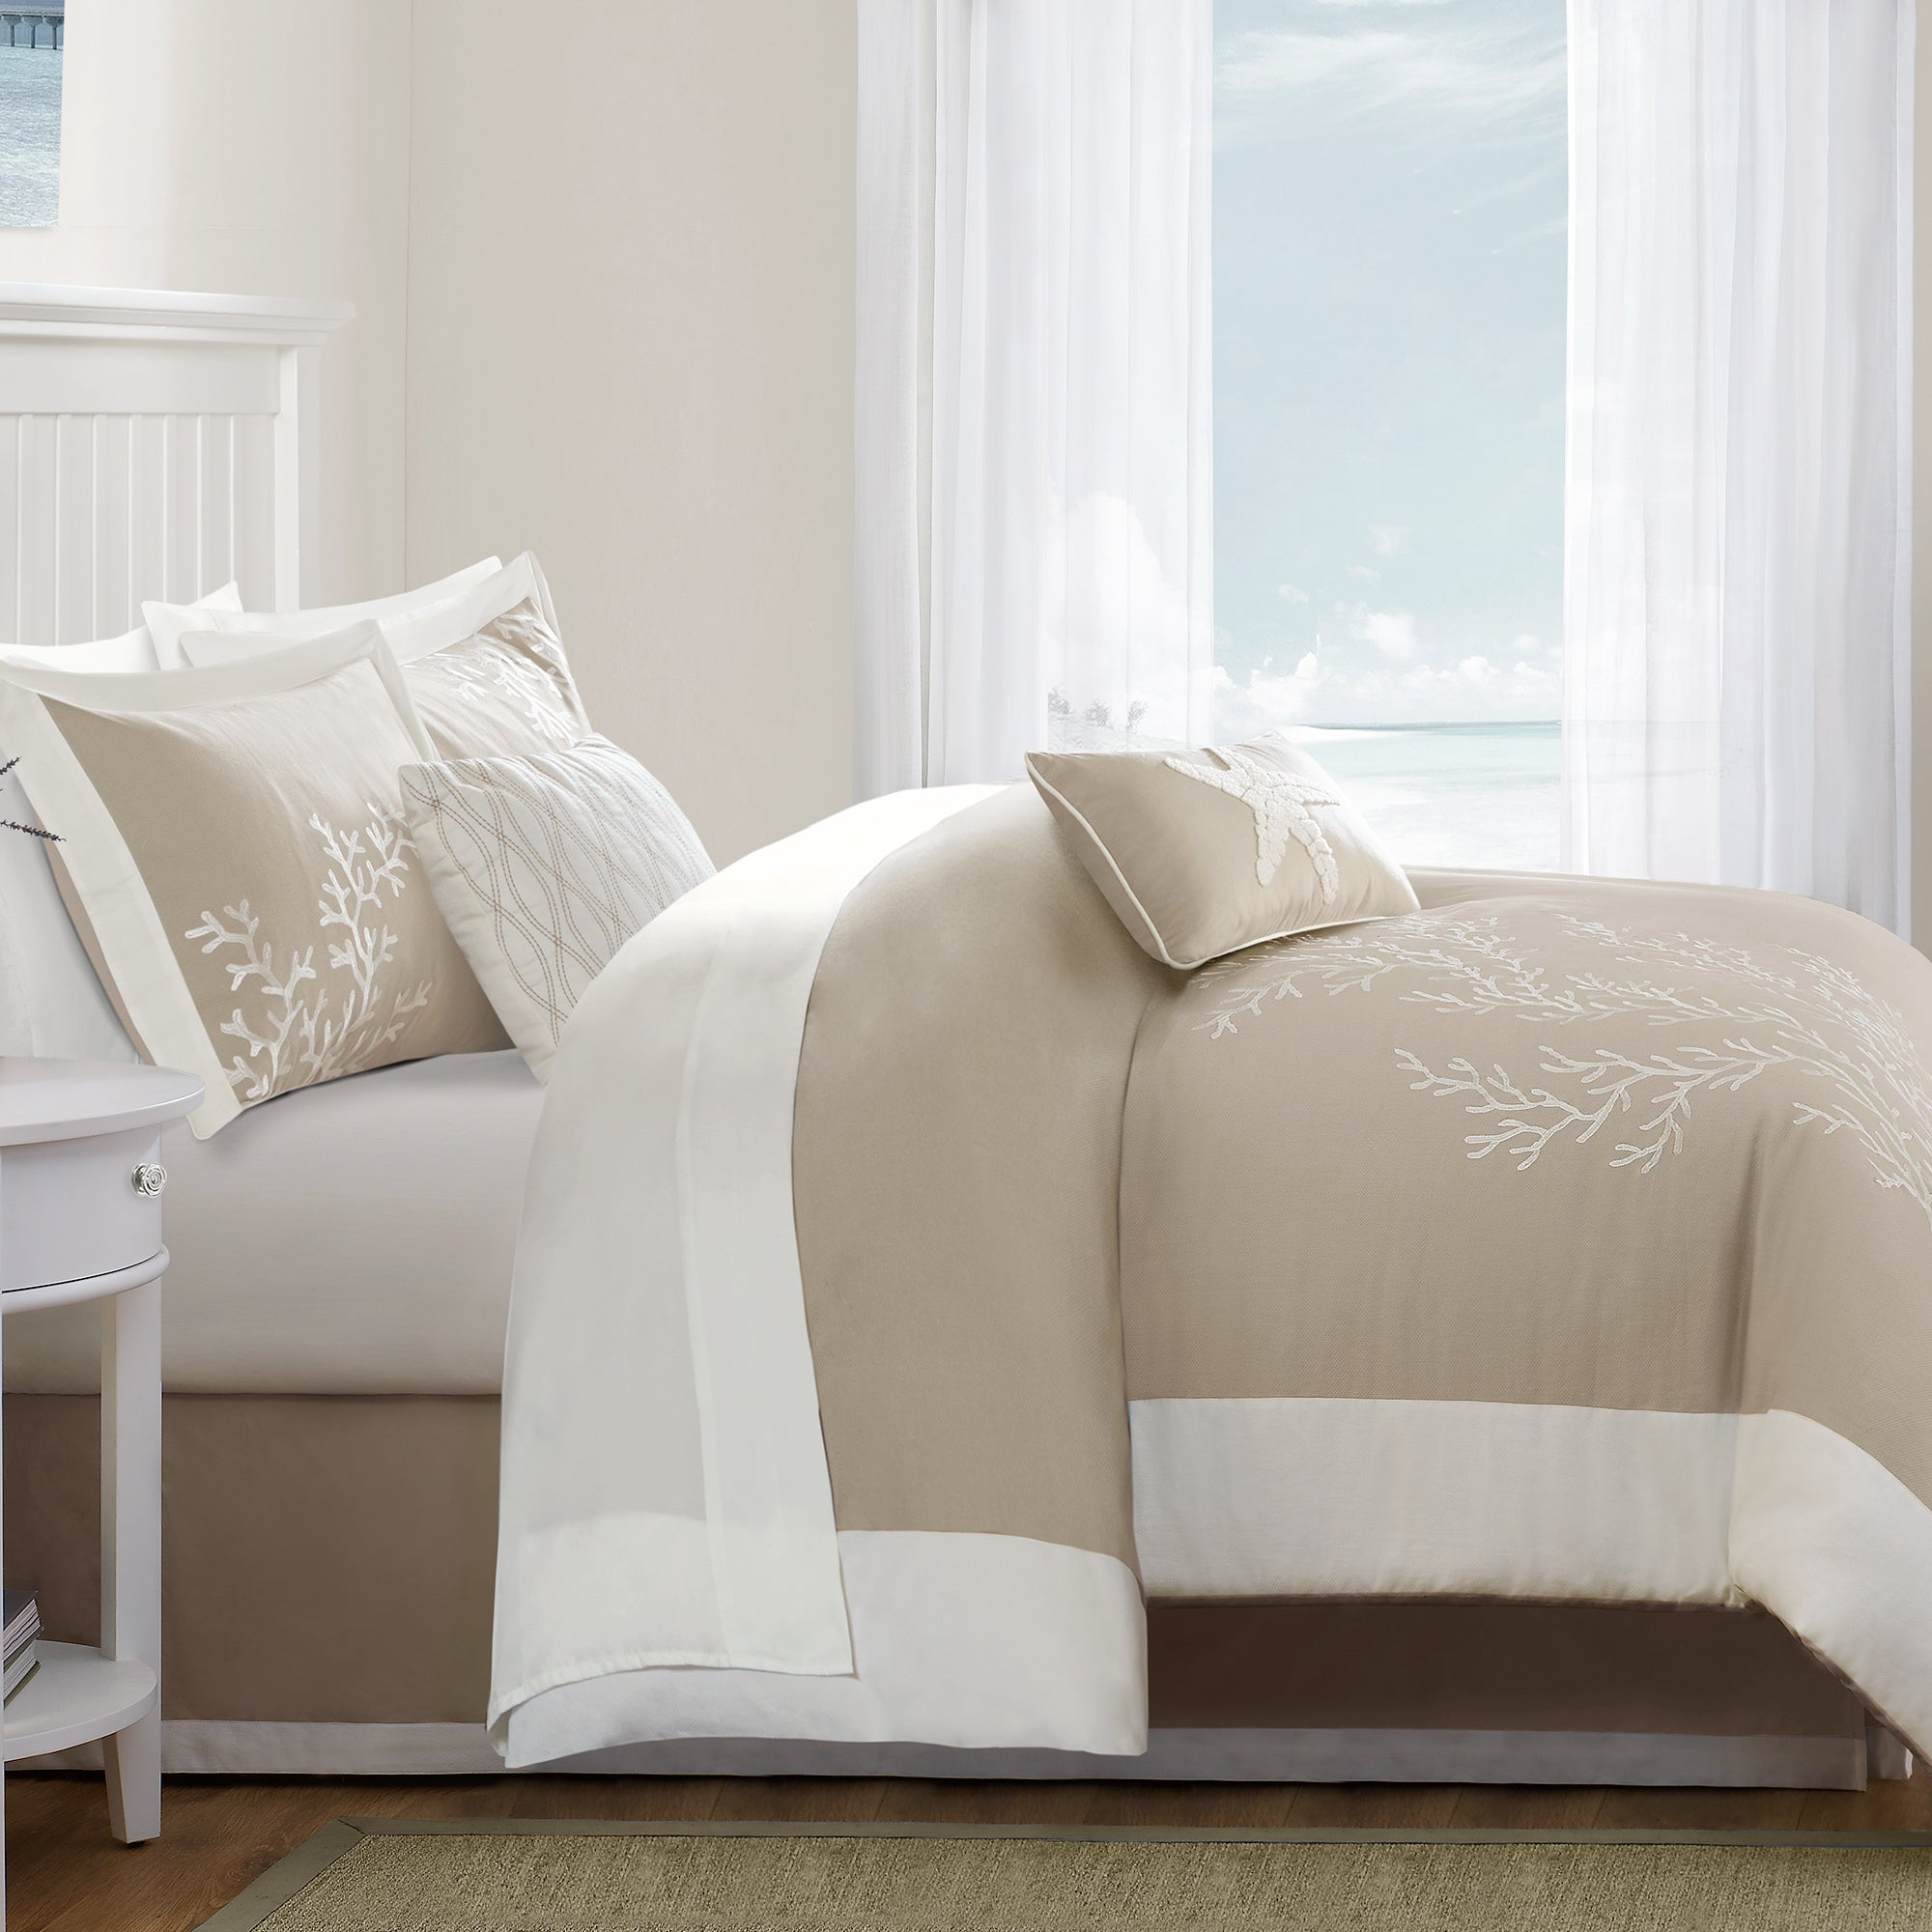 twin bag camel dorm comforter khaki sets cc set in large a clara bed clark bedding x piece products